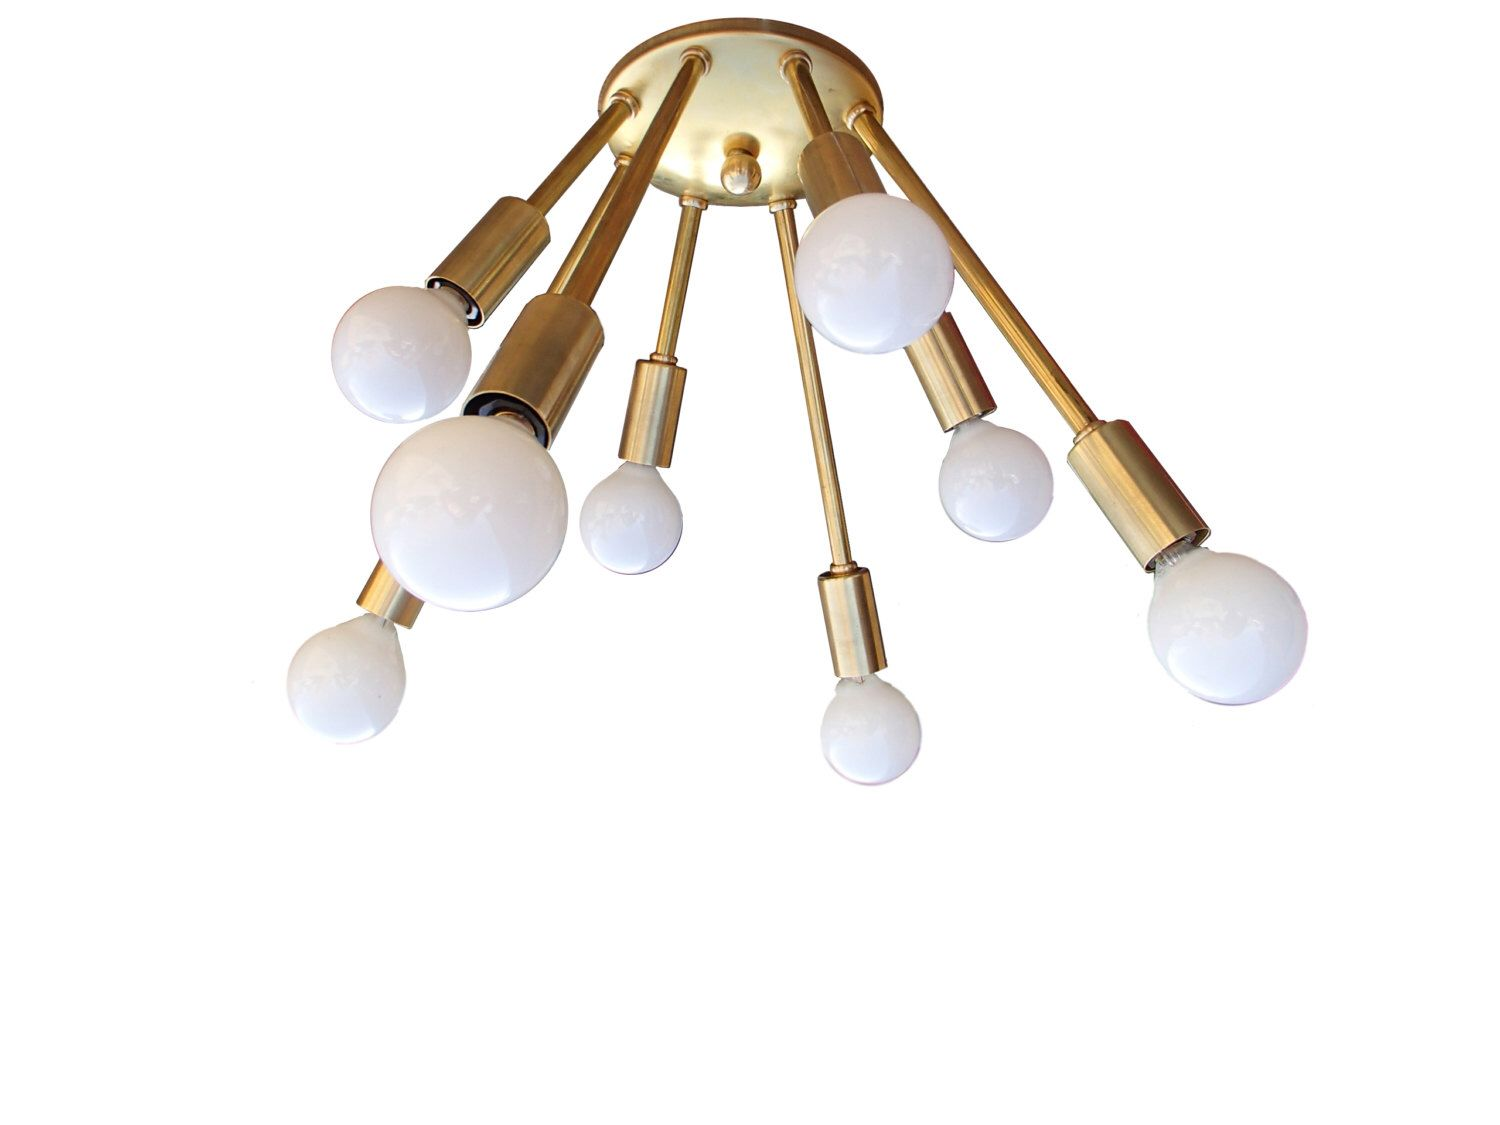 Quorum electra 8 light sputnik chandelier amp reviews wayfair - Atomic Narrow 8 Arm Flush Mount Sputnik Ceiling Light Mid Century Starburst